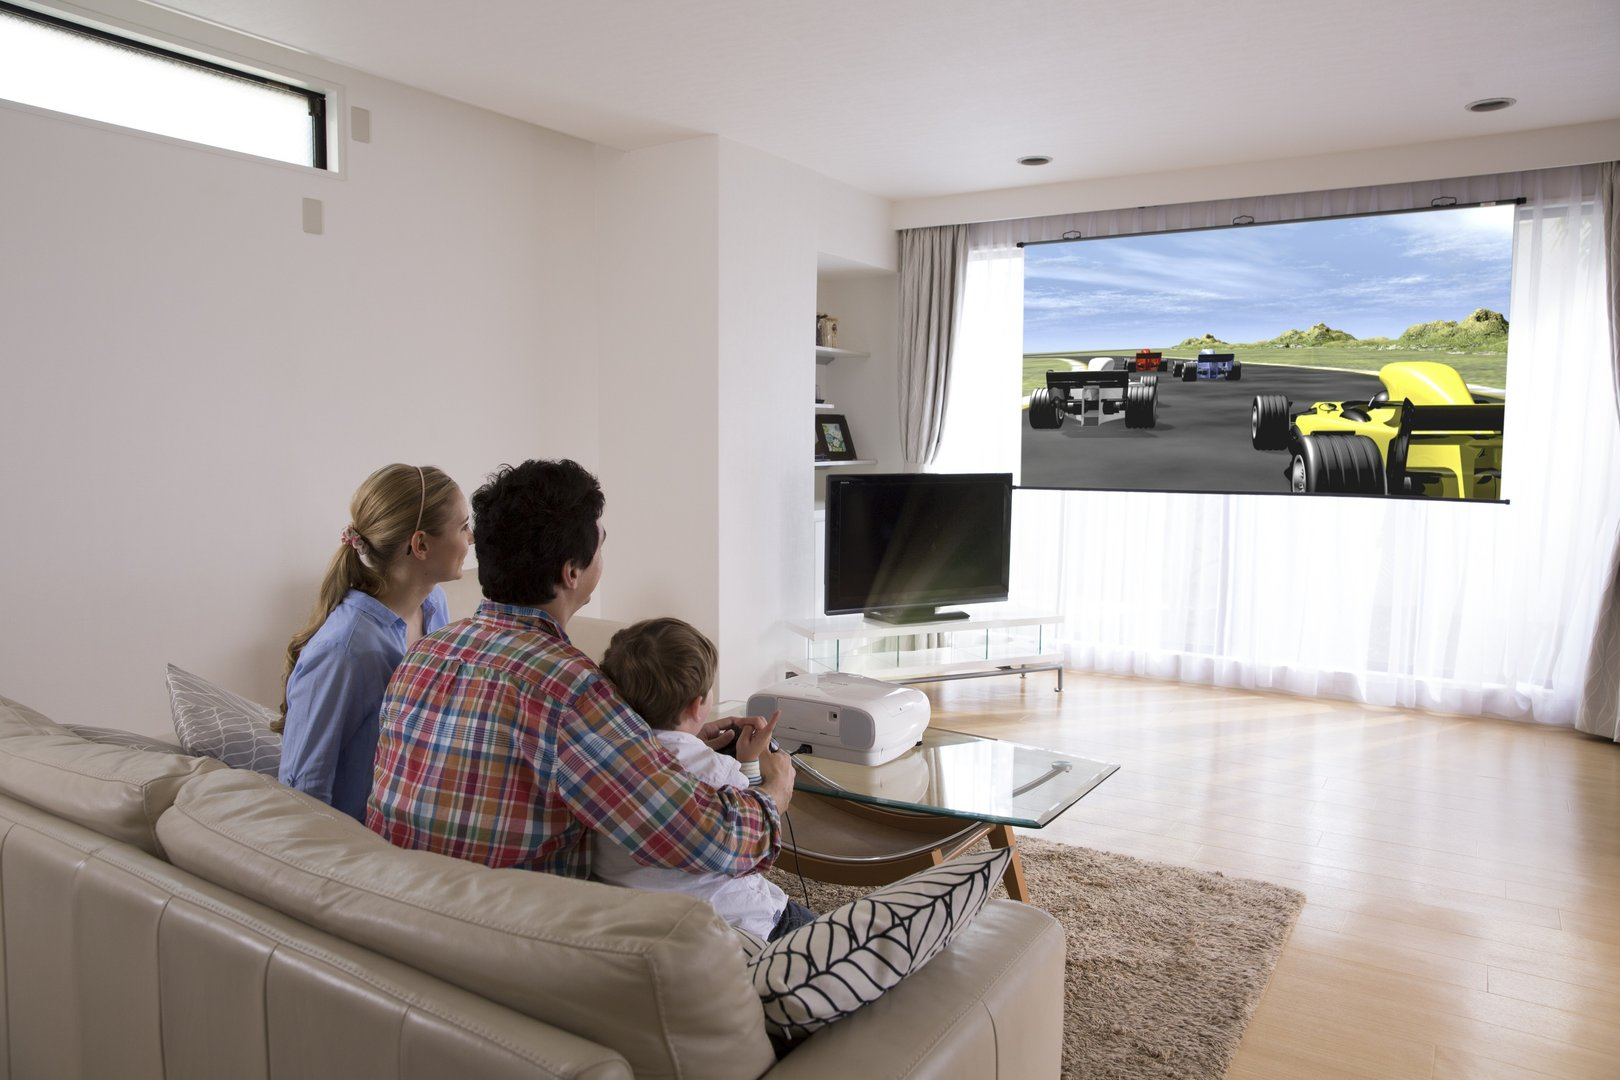 Beamer In Huis : Beamer in huis: beamer kopen mediamarkt. de projector media player